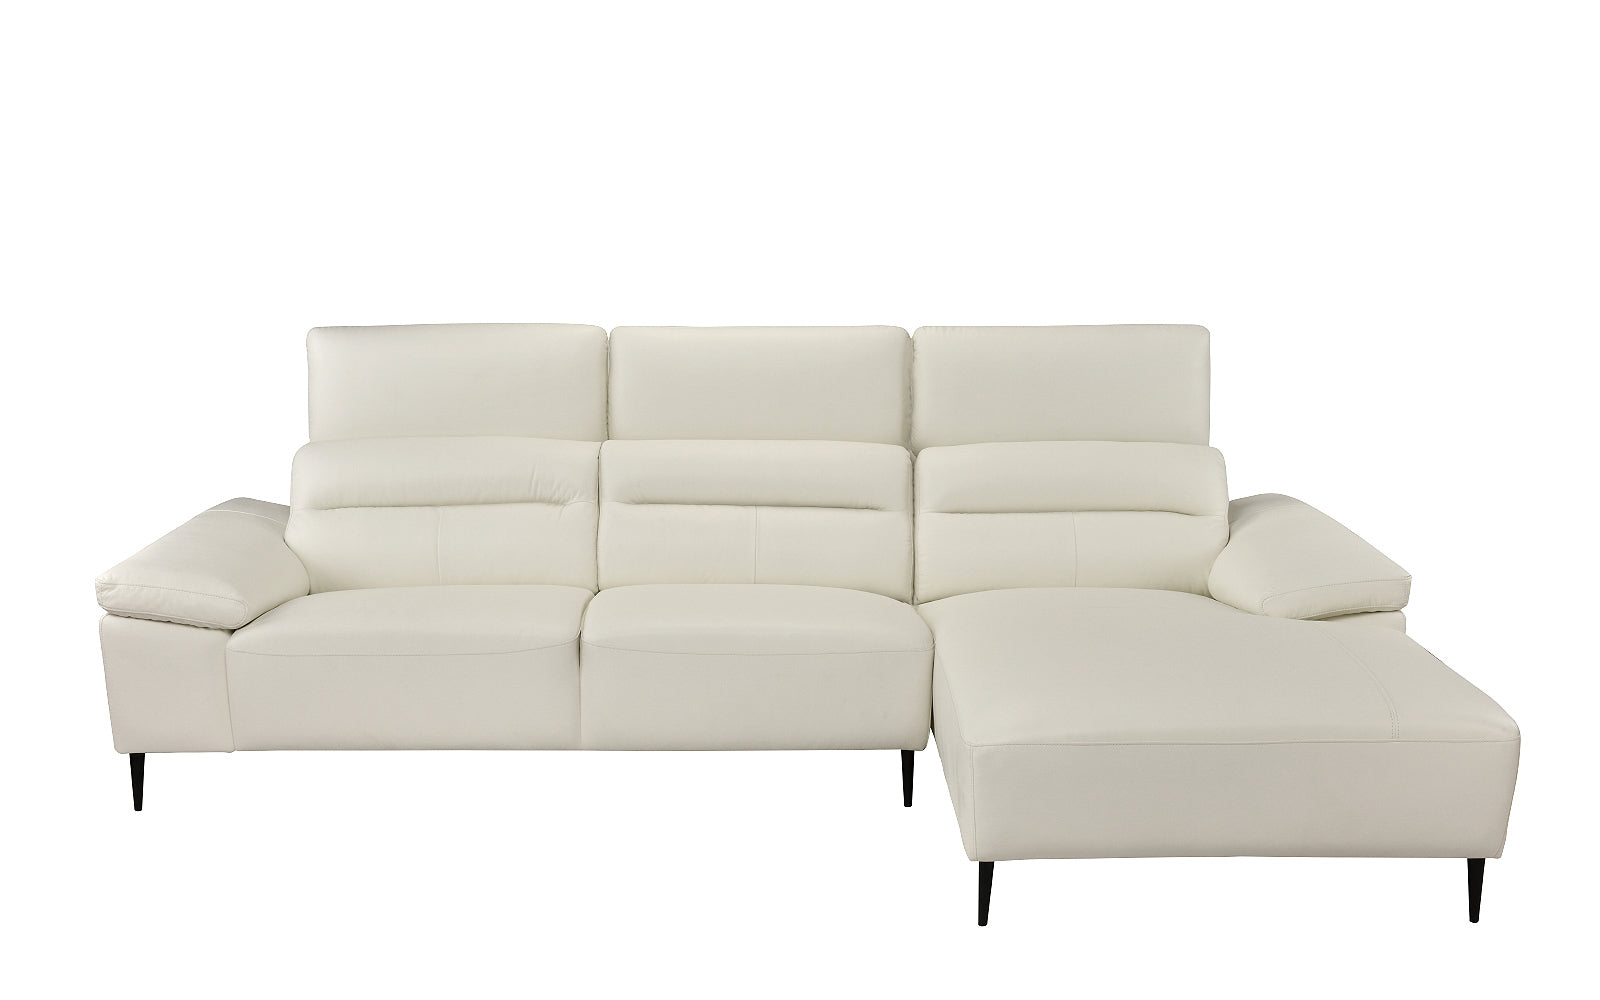 Leather Sectional Sofa Right Chaise Image